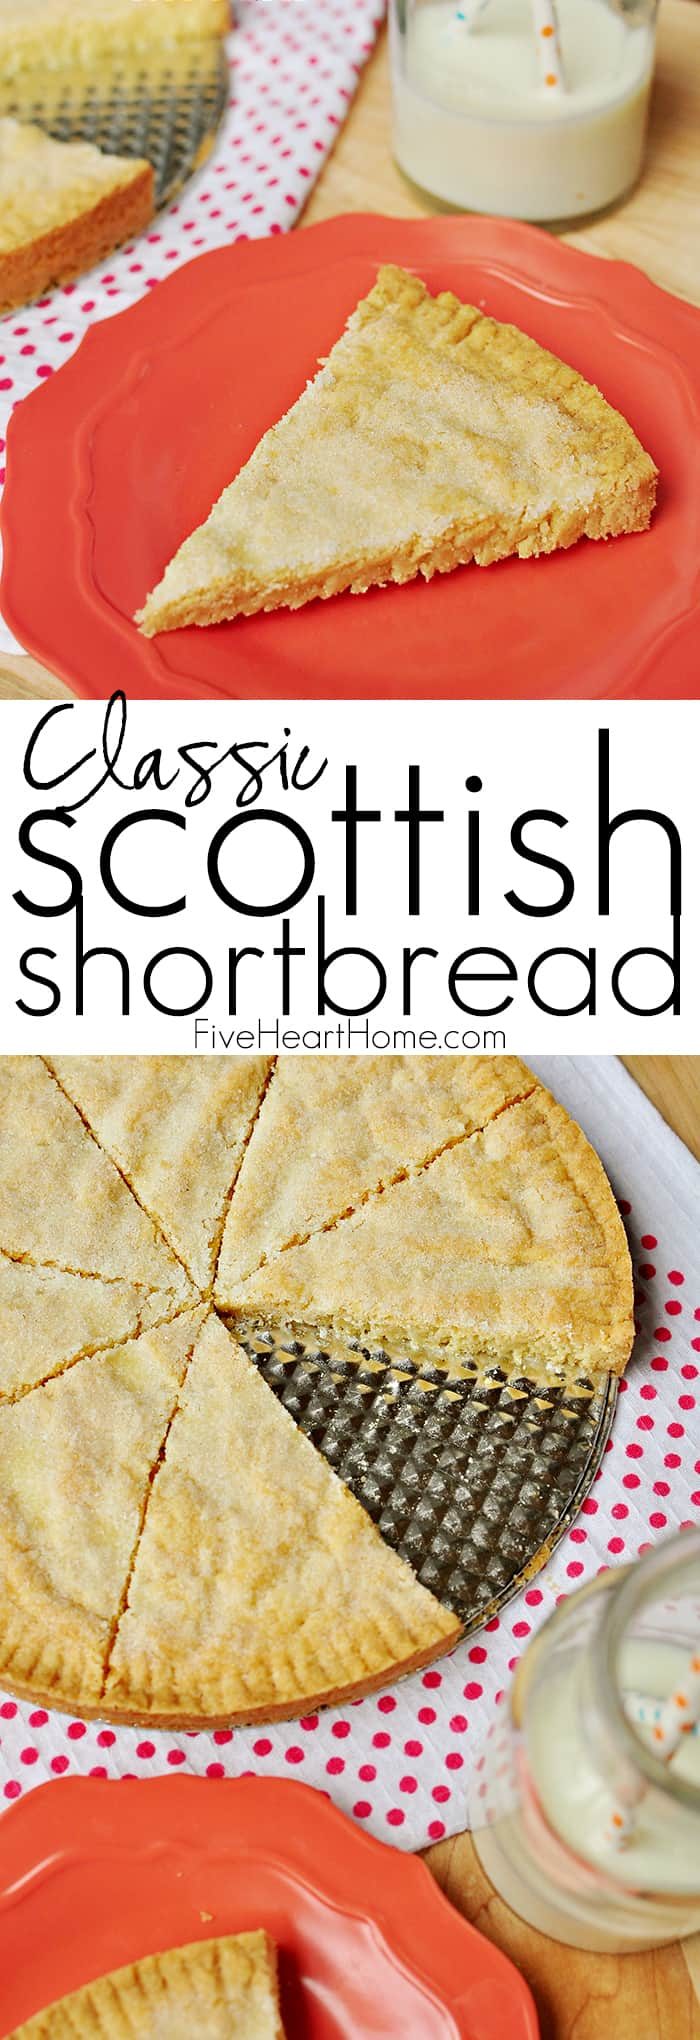 Classic Scottish Shortbread Collage with Text Overlay